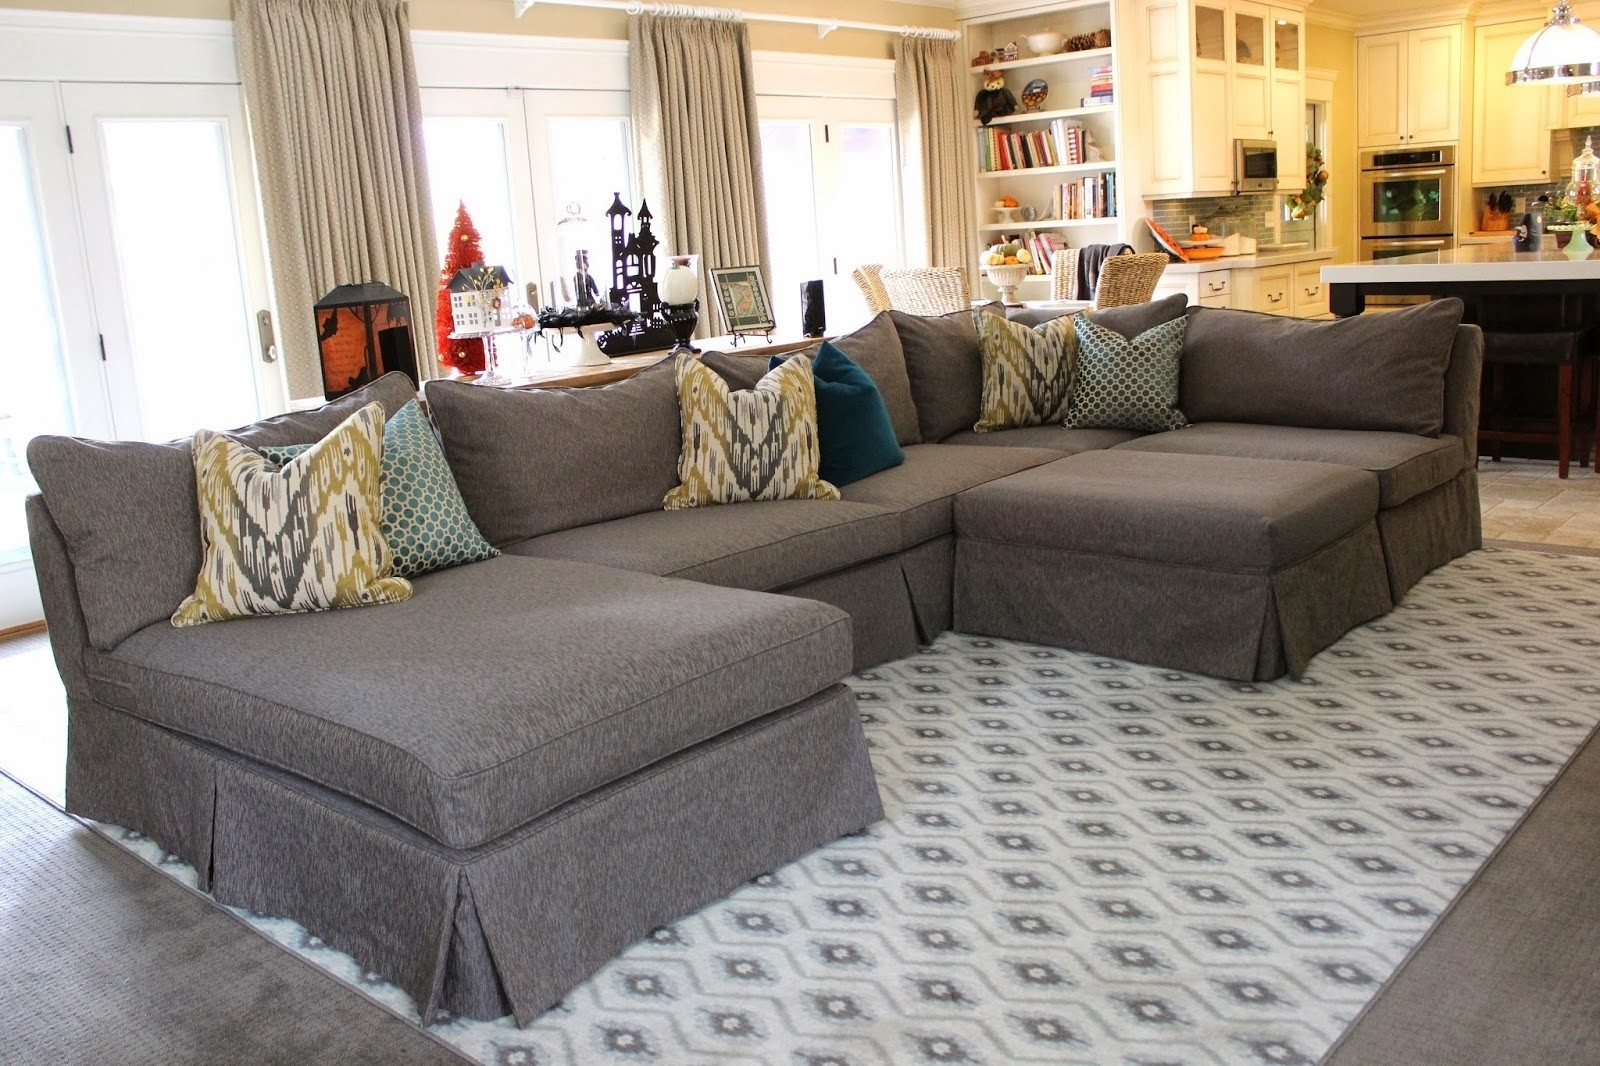 2 Piece Sectional Sofa Slipcovers – Home Decor 88 With Regard To Avery 2 Piece Sectionals With Laf Armless Chaise (View 19 of 25)